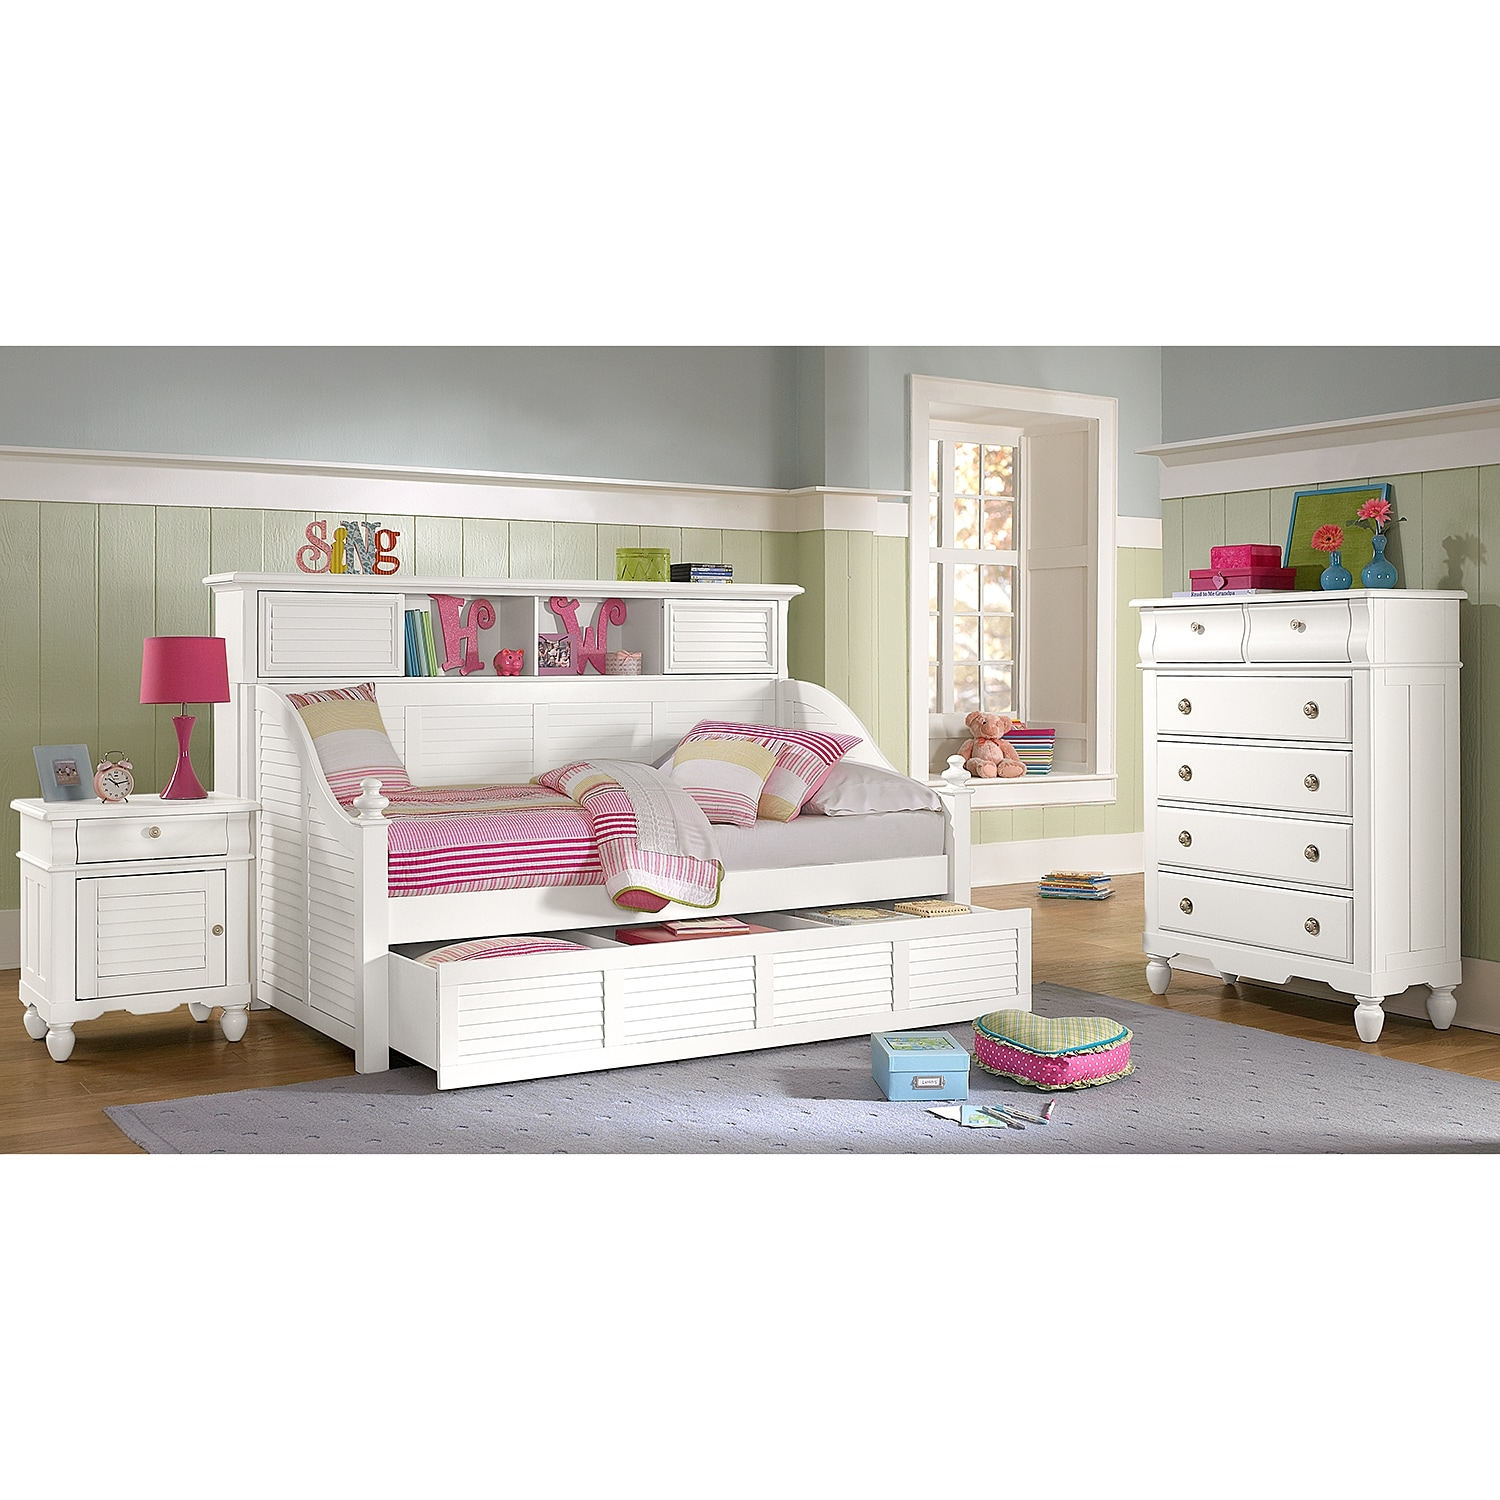 Click to change image. - Seaside Twin Bookcase Daybed With Trundle - White American